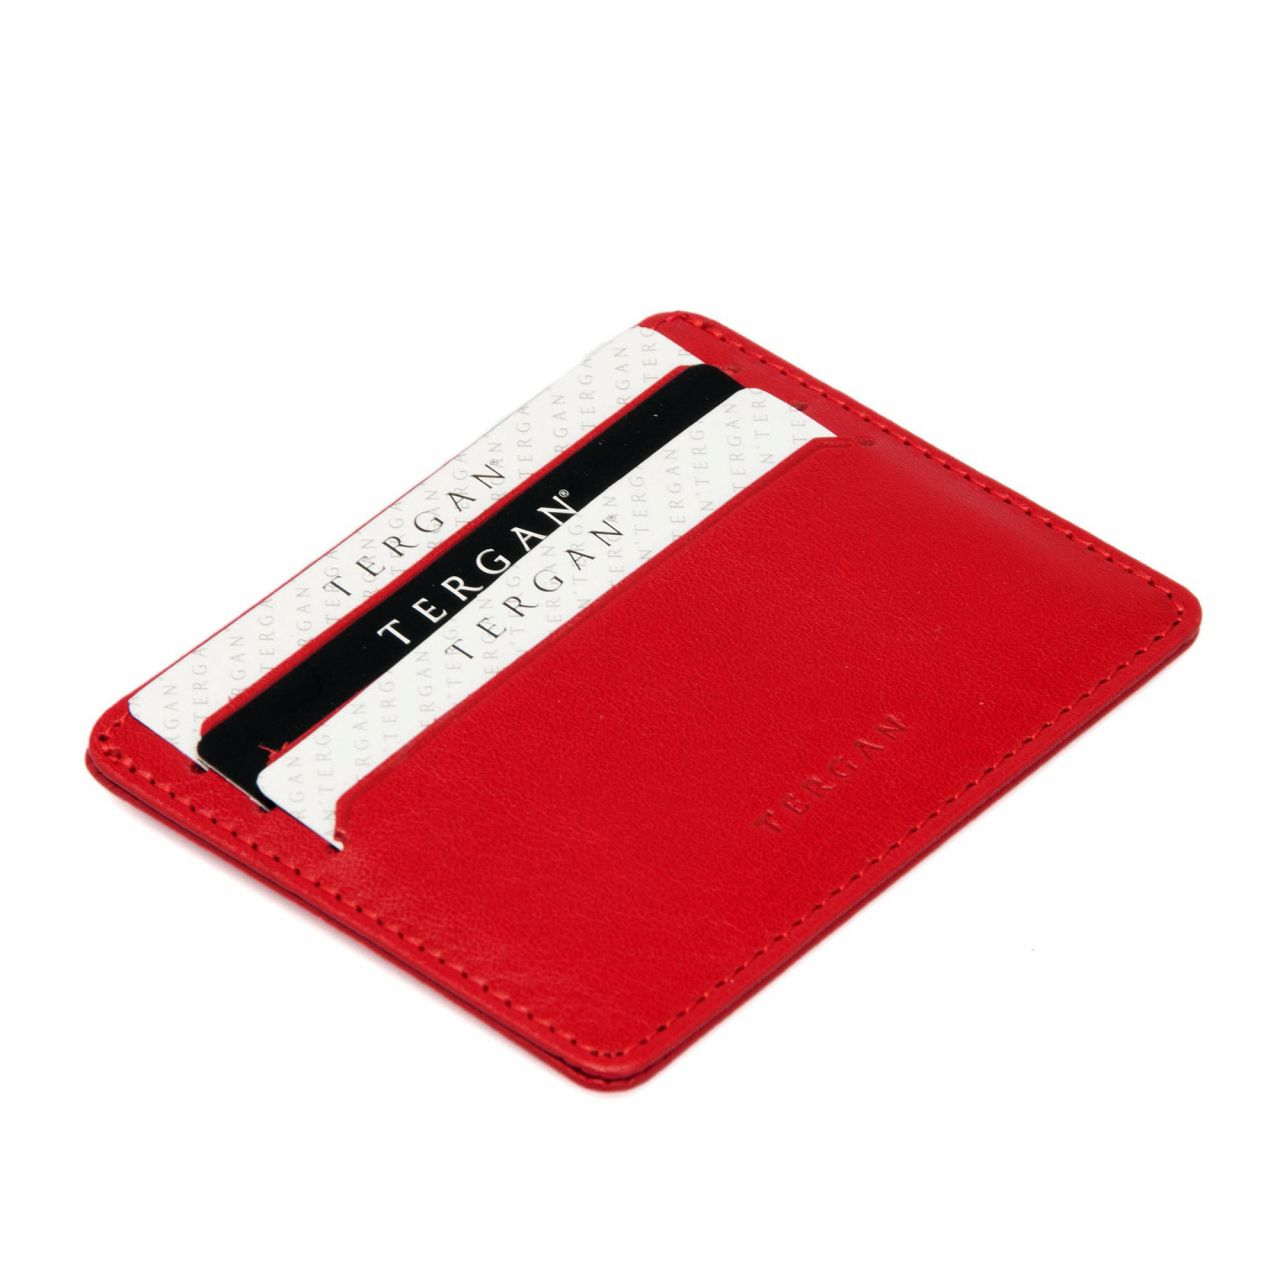 Wallet card case in red